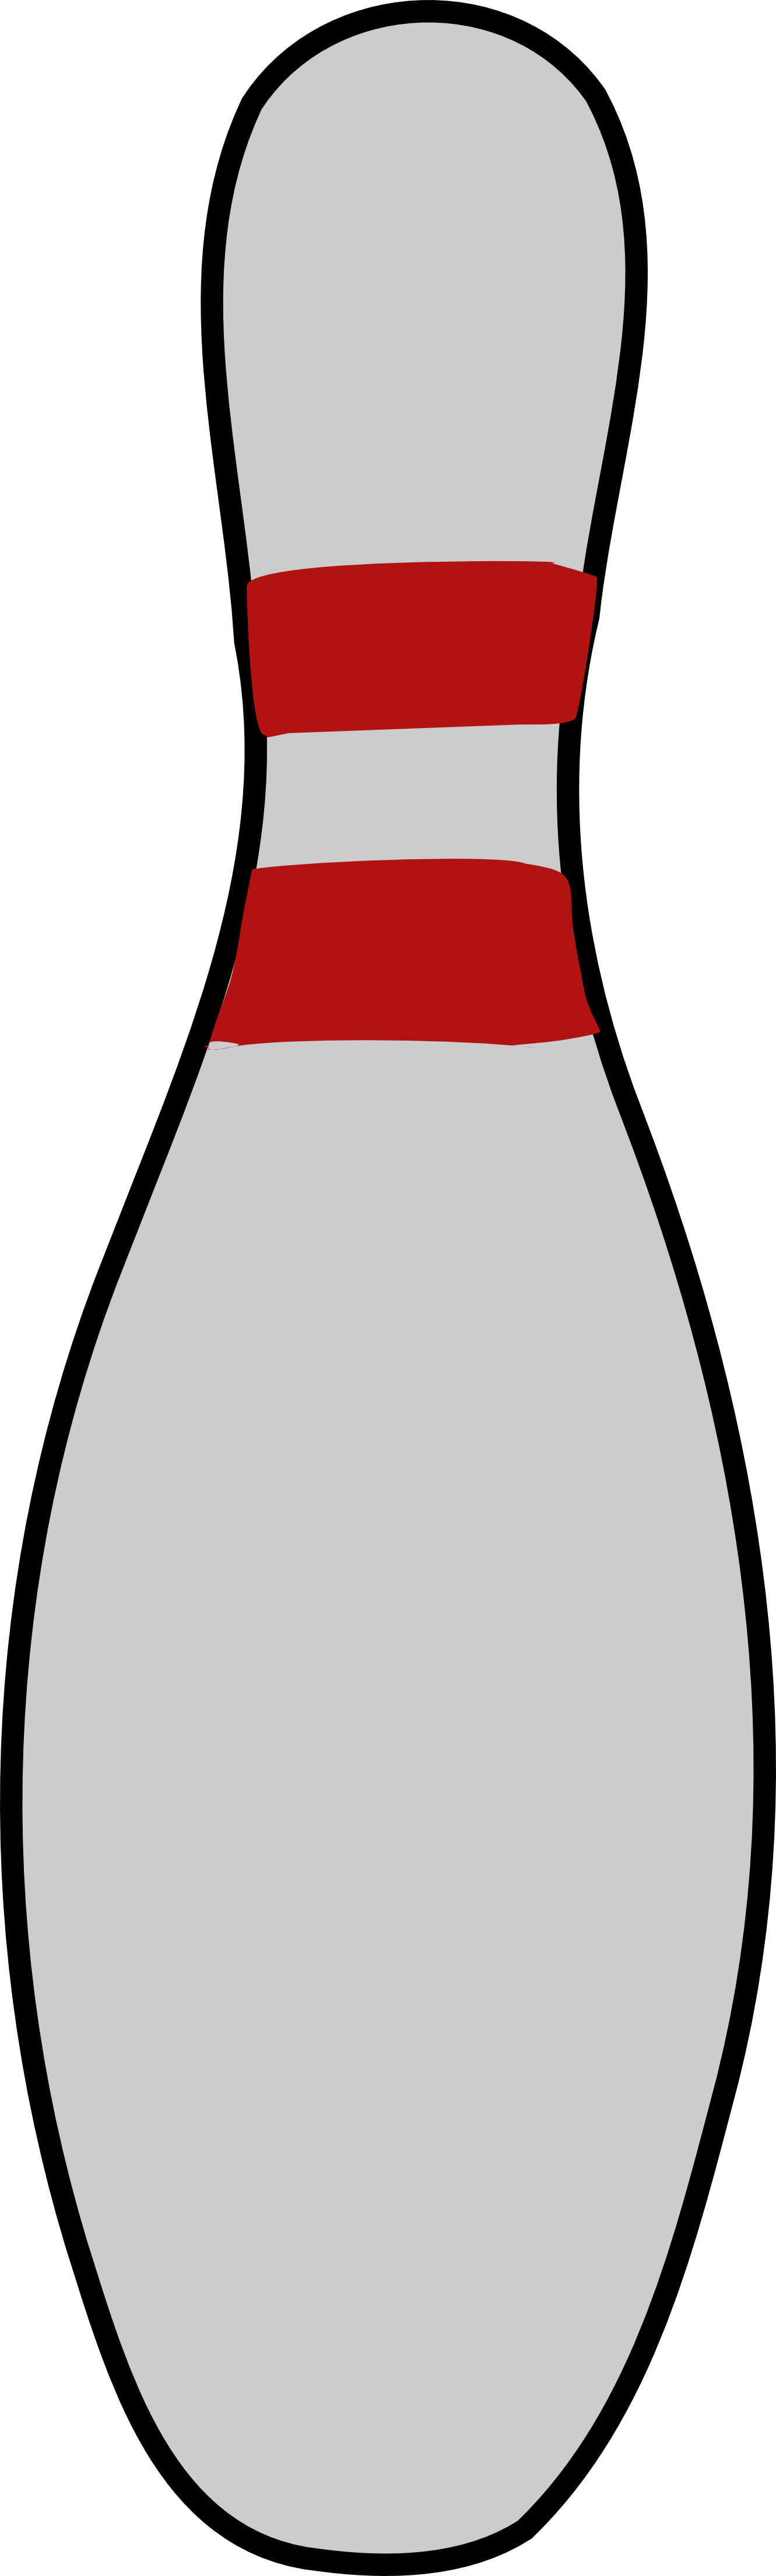 Bowling Pin 3 Coloring Book Colouring Le-Bowling Pin 3 Coloring Book Colouring Letters Colouringbook Org-1